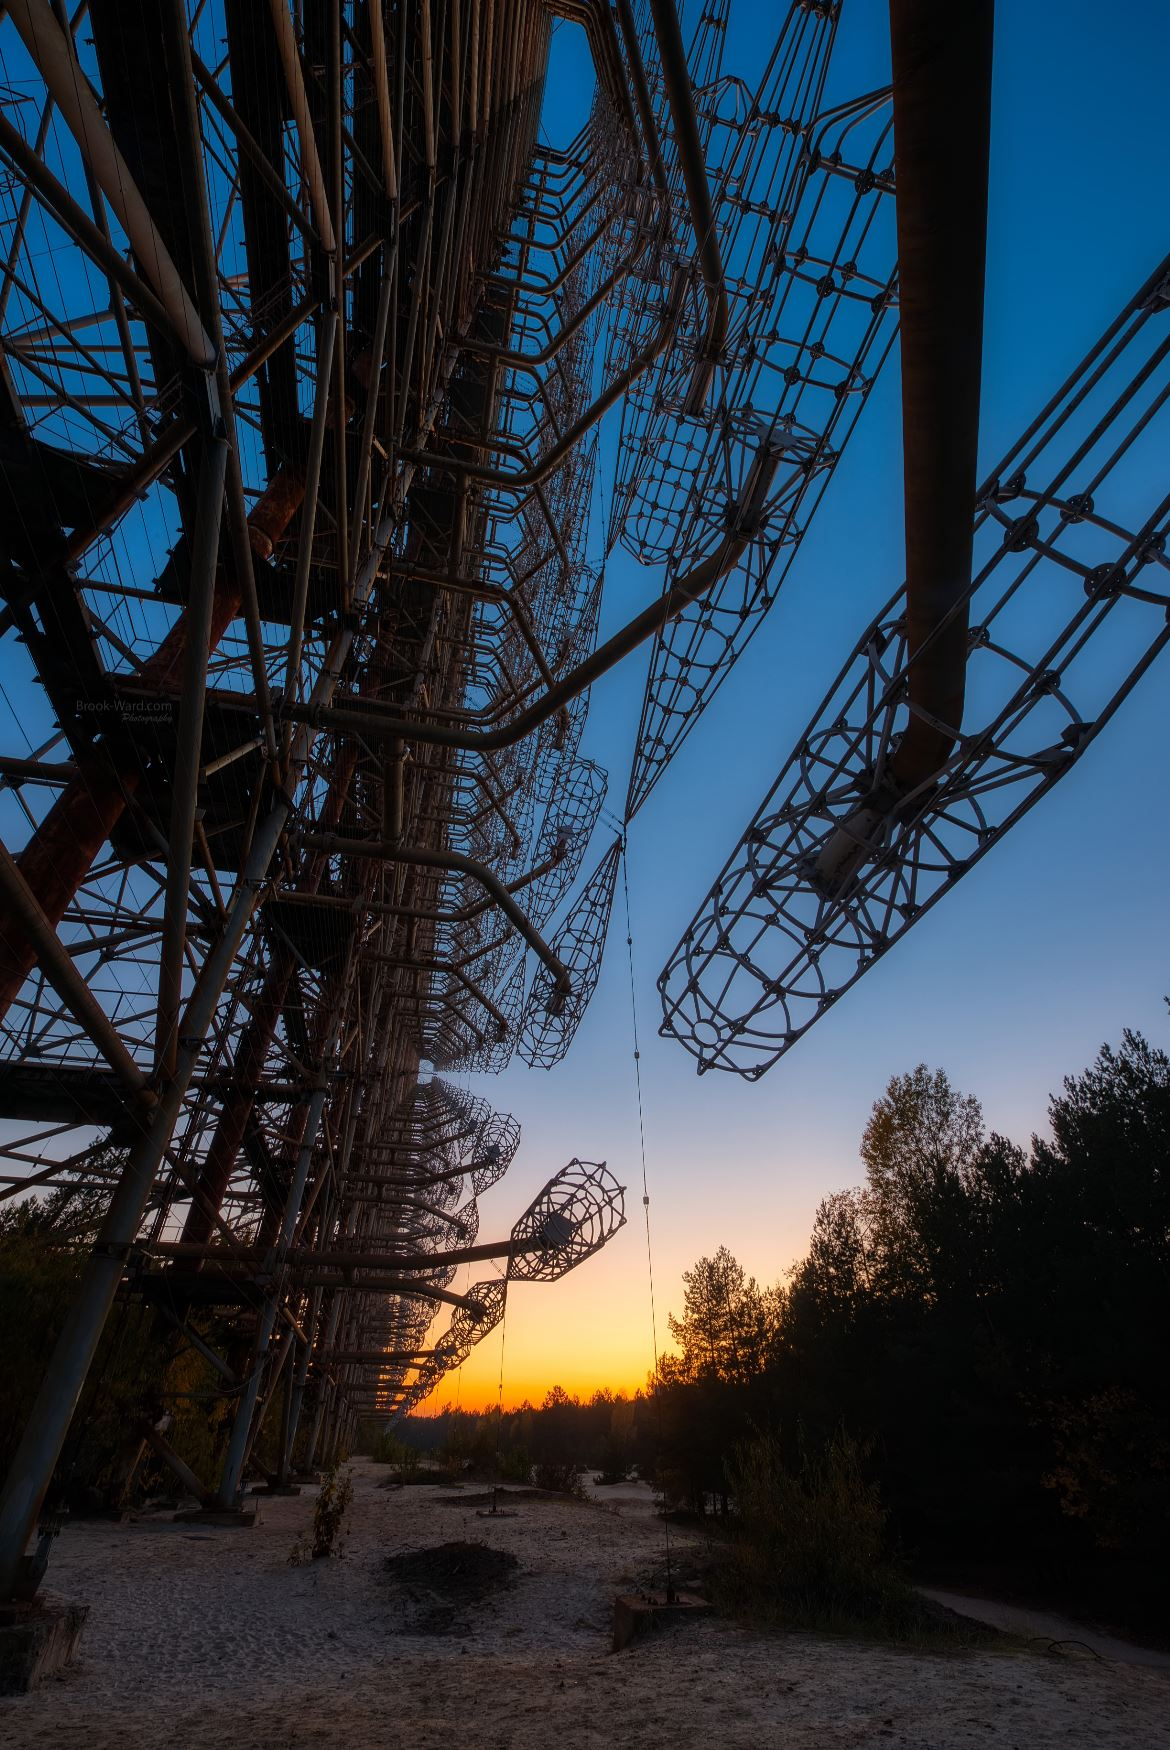 Chernobyl - DUGA Russian Woodpecker